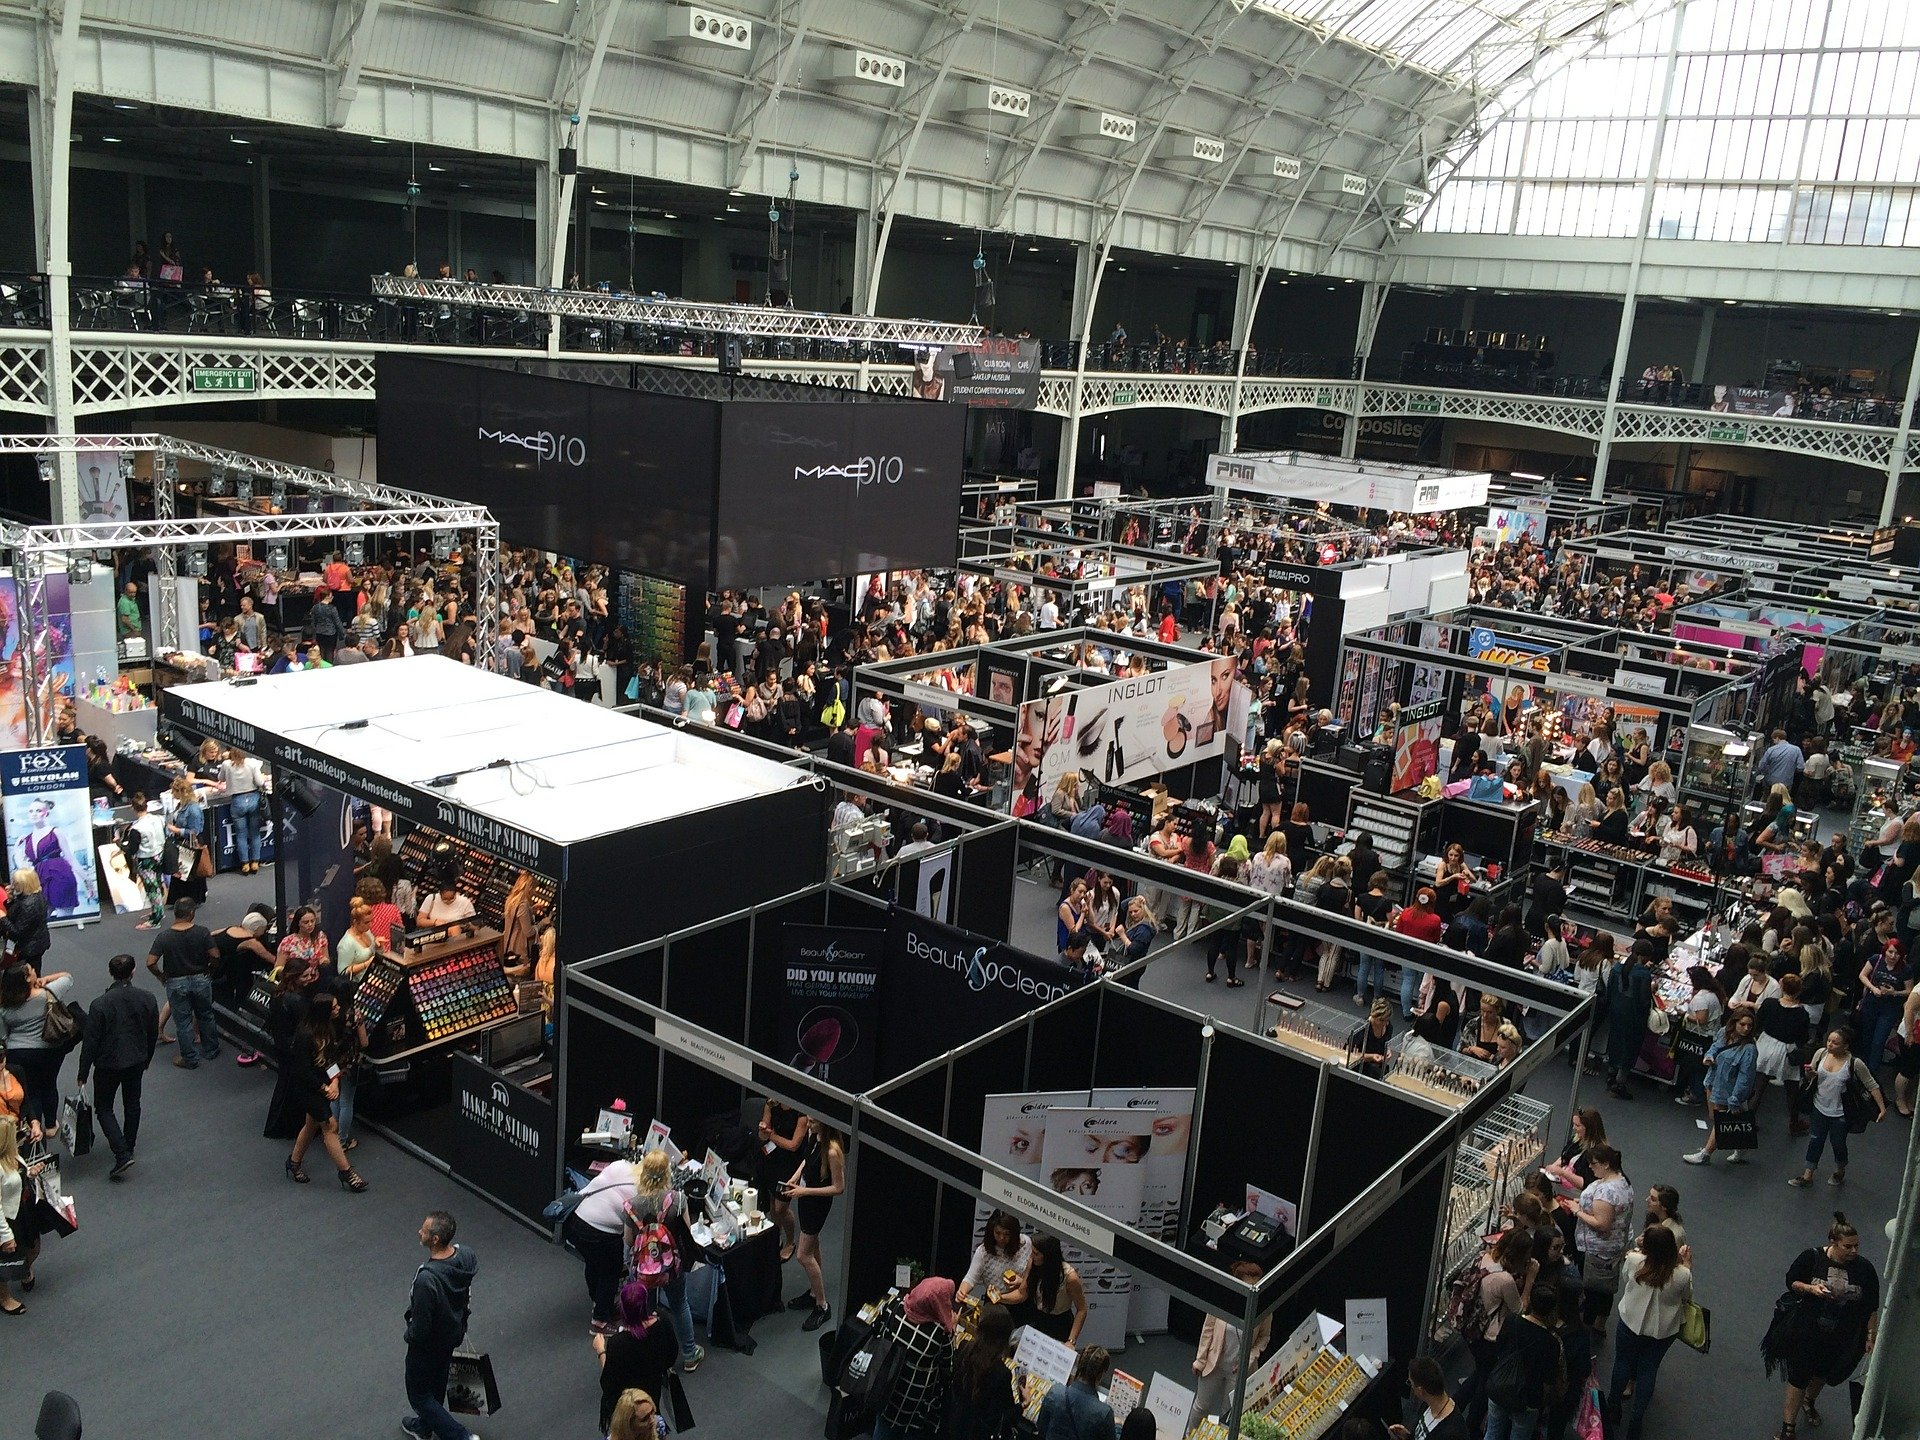 Exhibition Stands - How to Provide a Personalised Experience at a Trade Show